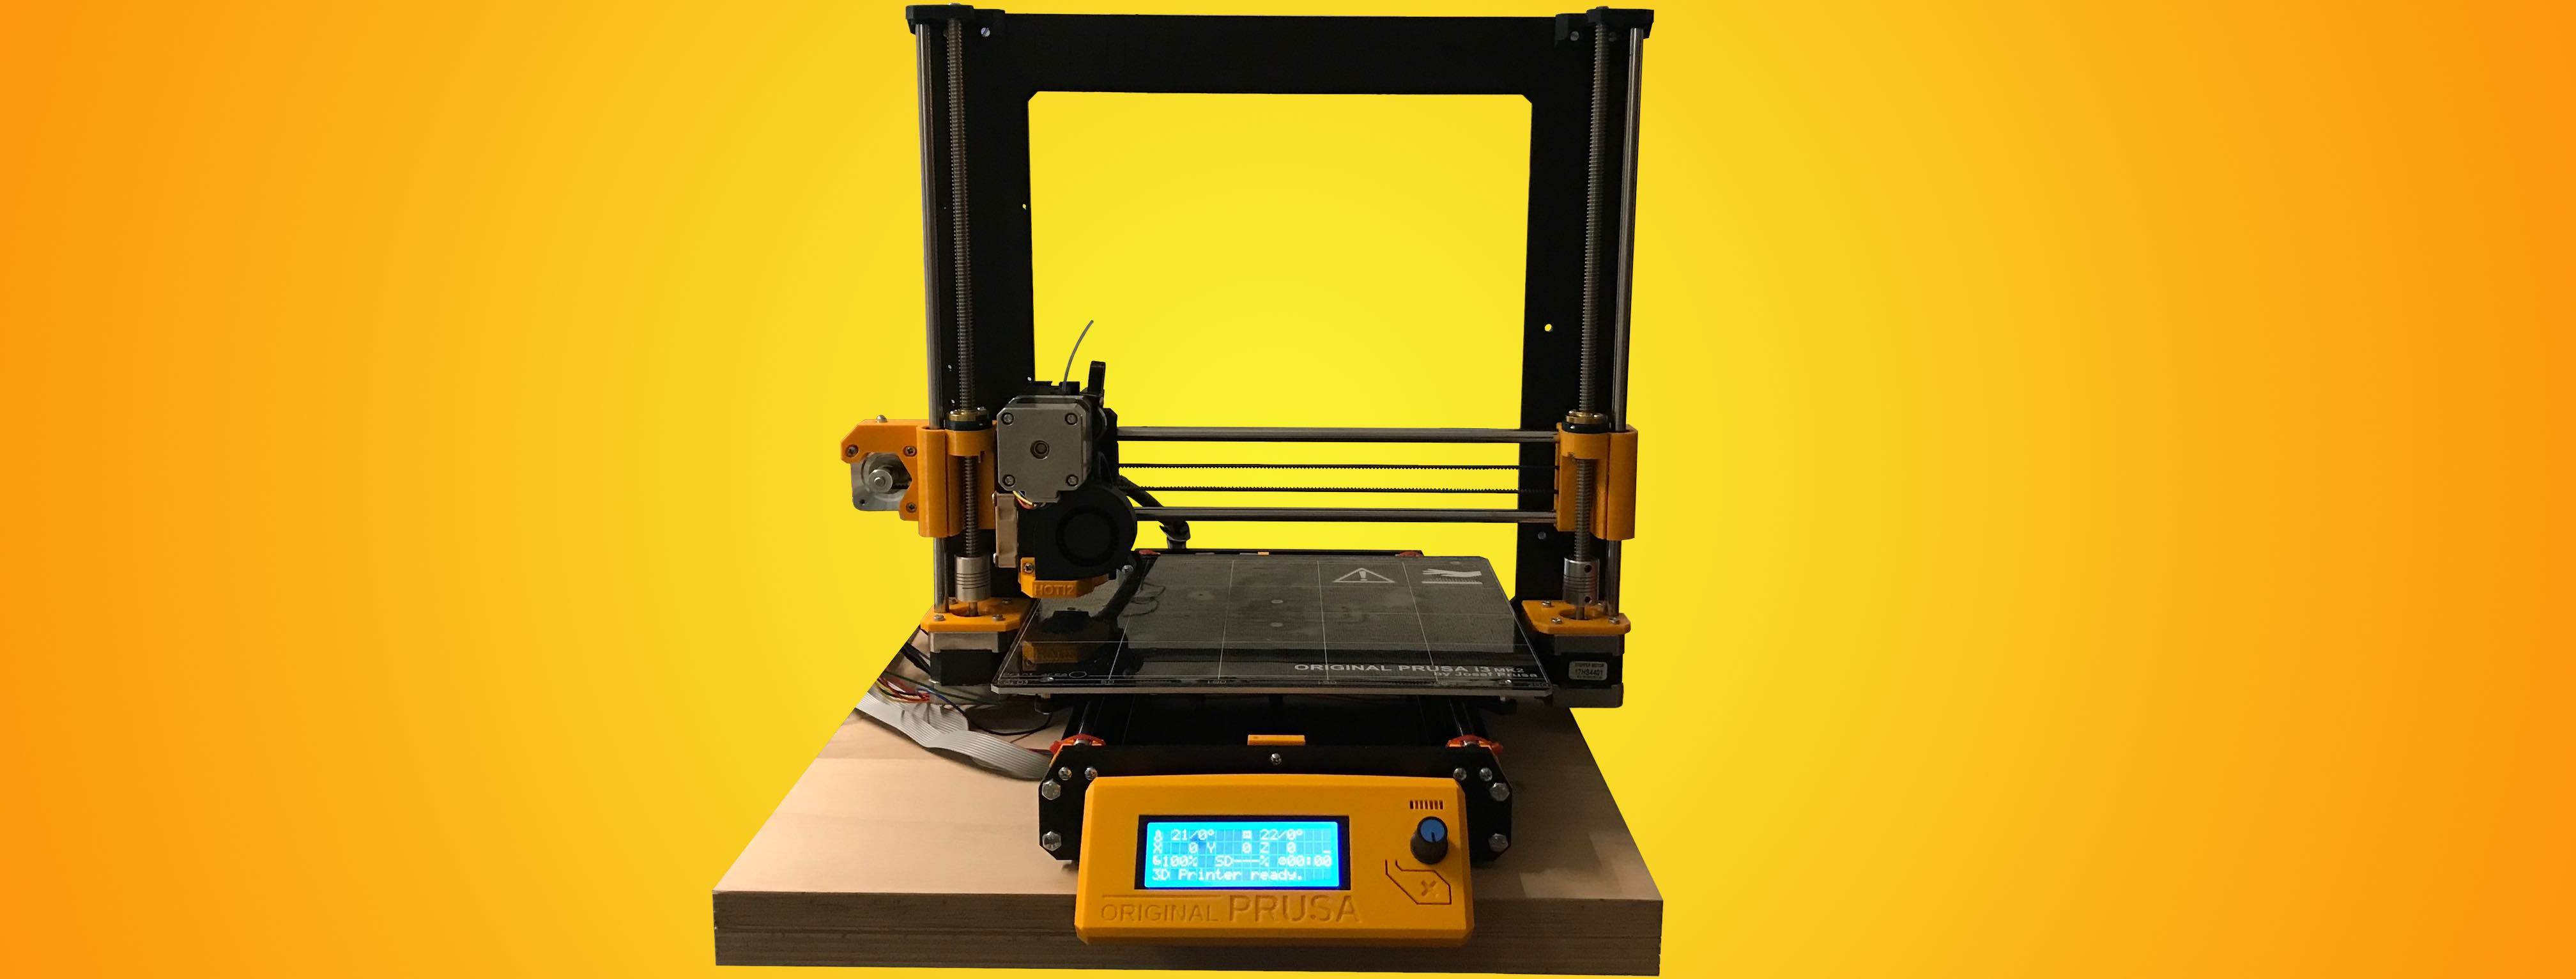 'Final' assembly of the Prusa i3 MK3 clone 3D-Printer, lessons learned and conclusions feature image